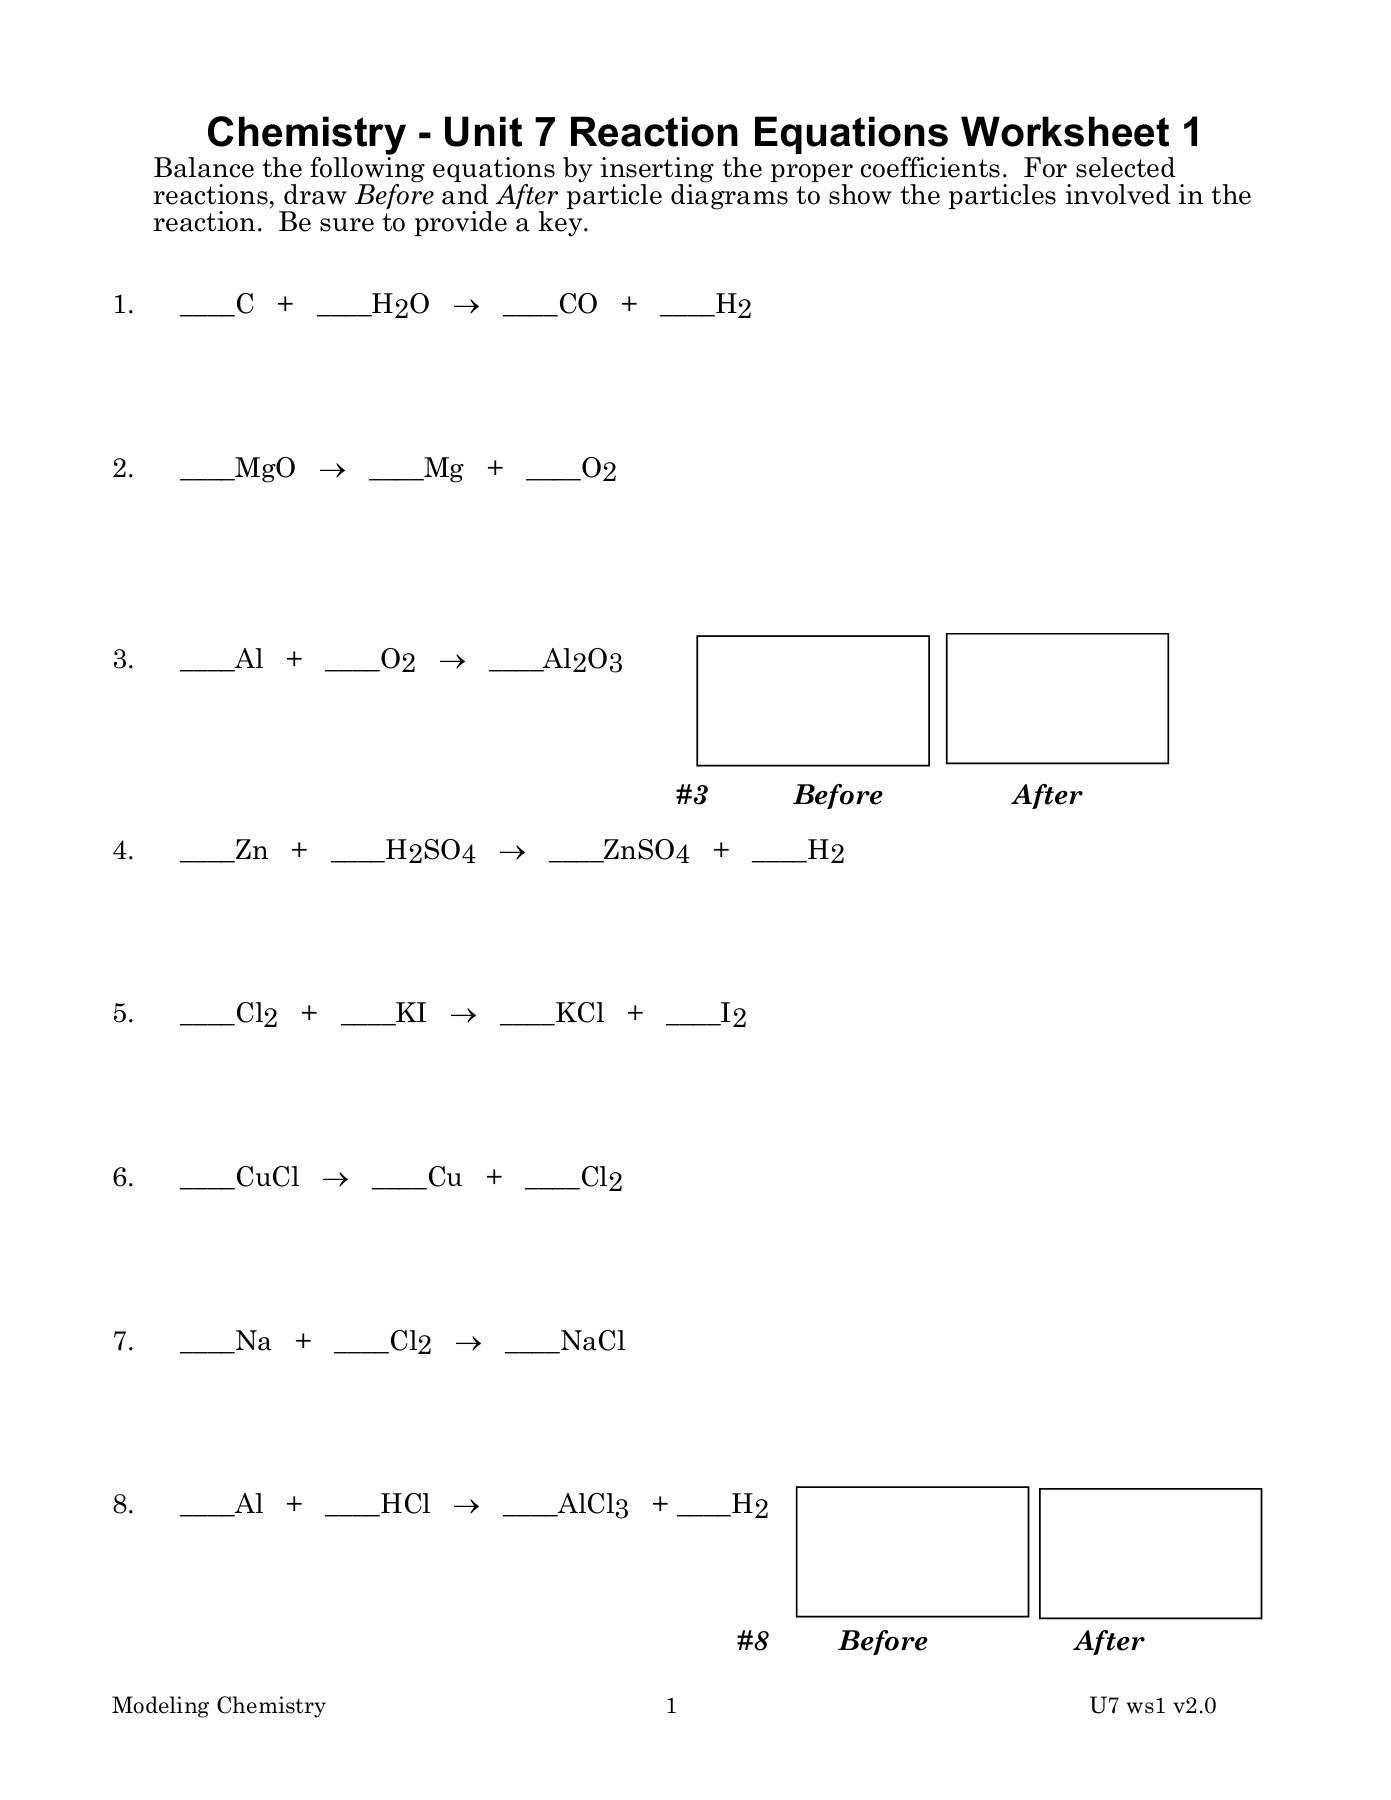 Chemistry Unit 8 Reaction Equations Worksheet 1 Answers